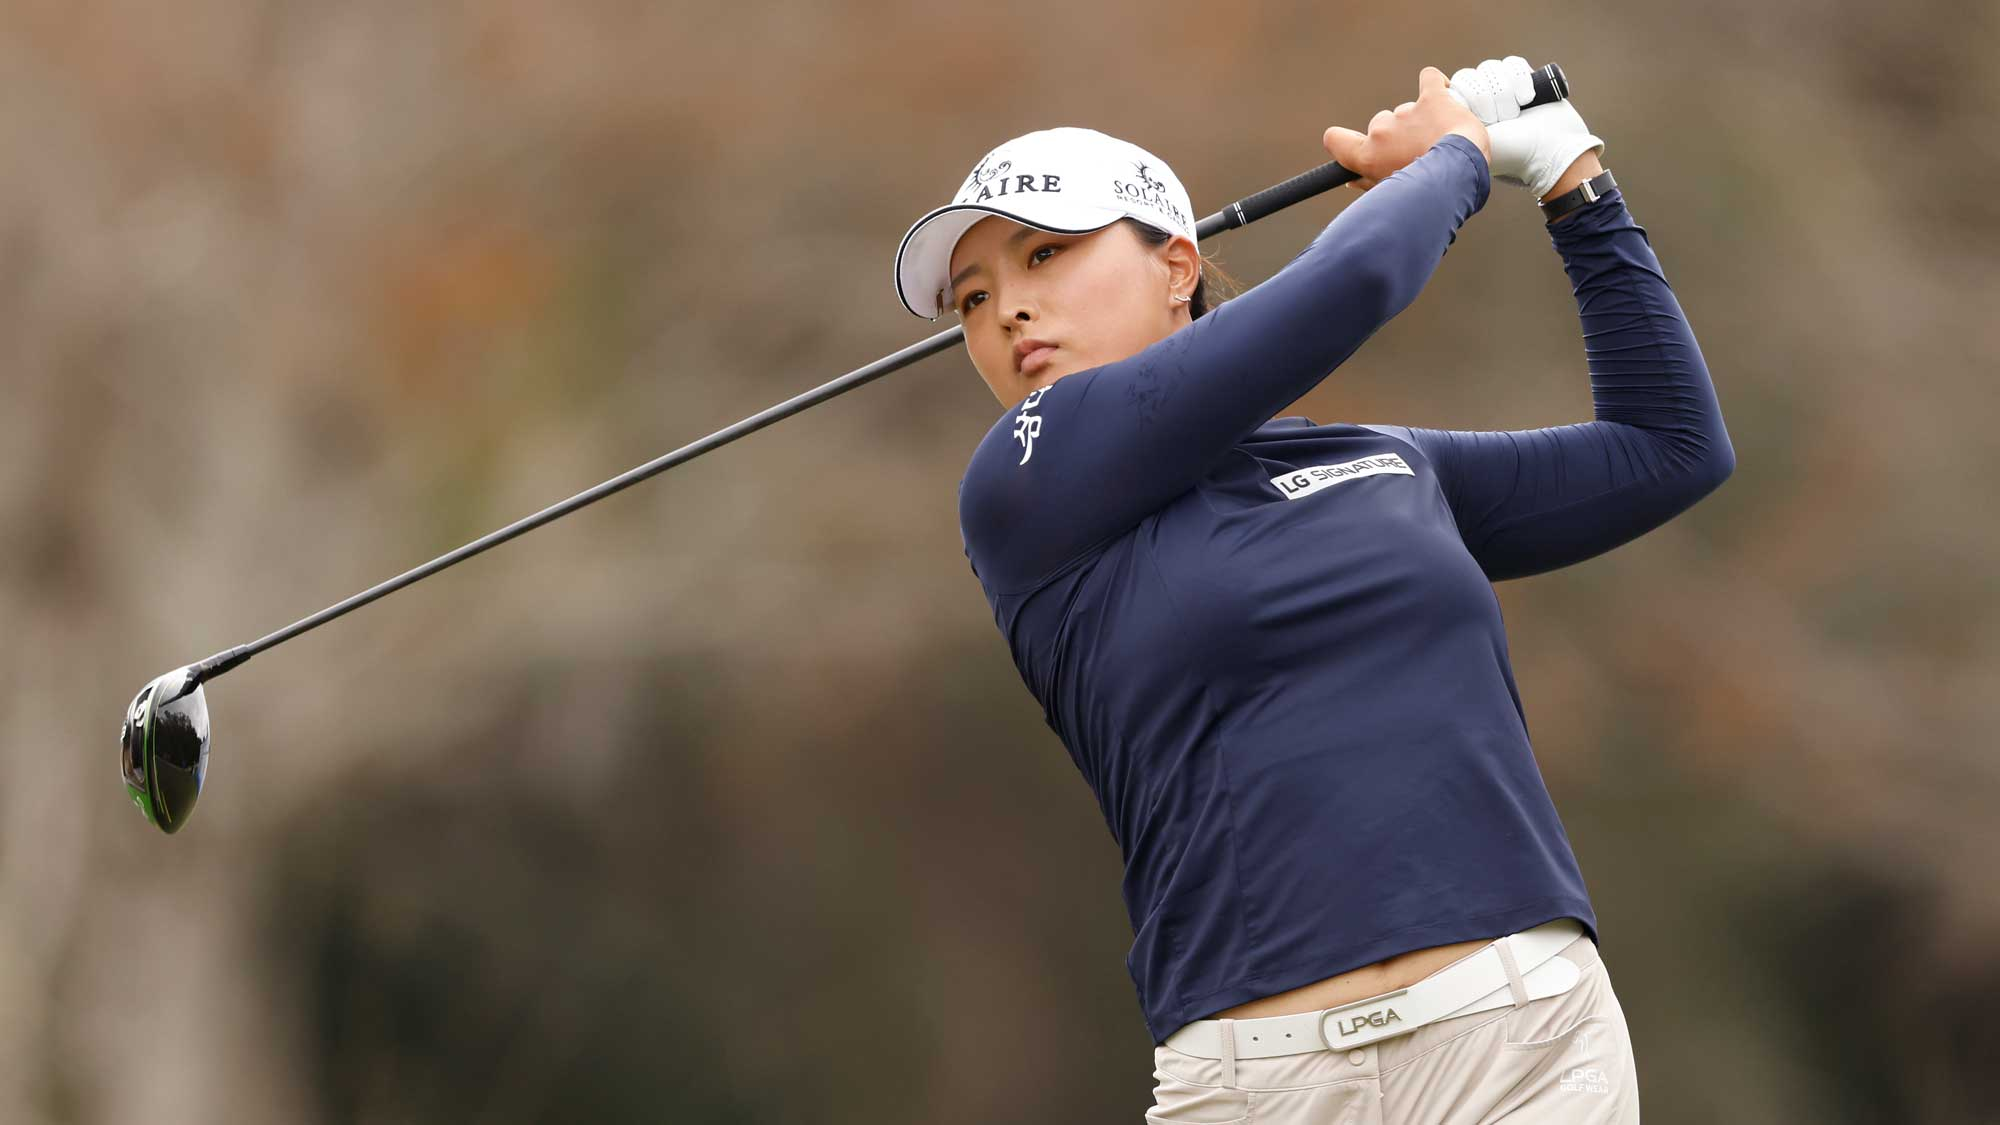 Jin Young Ko of Korea plays her shot from the third tee during the first round of the CME Group Tour Championship